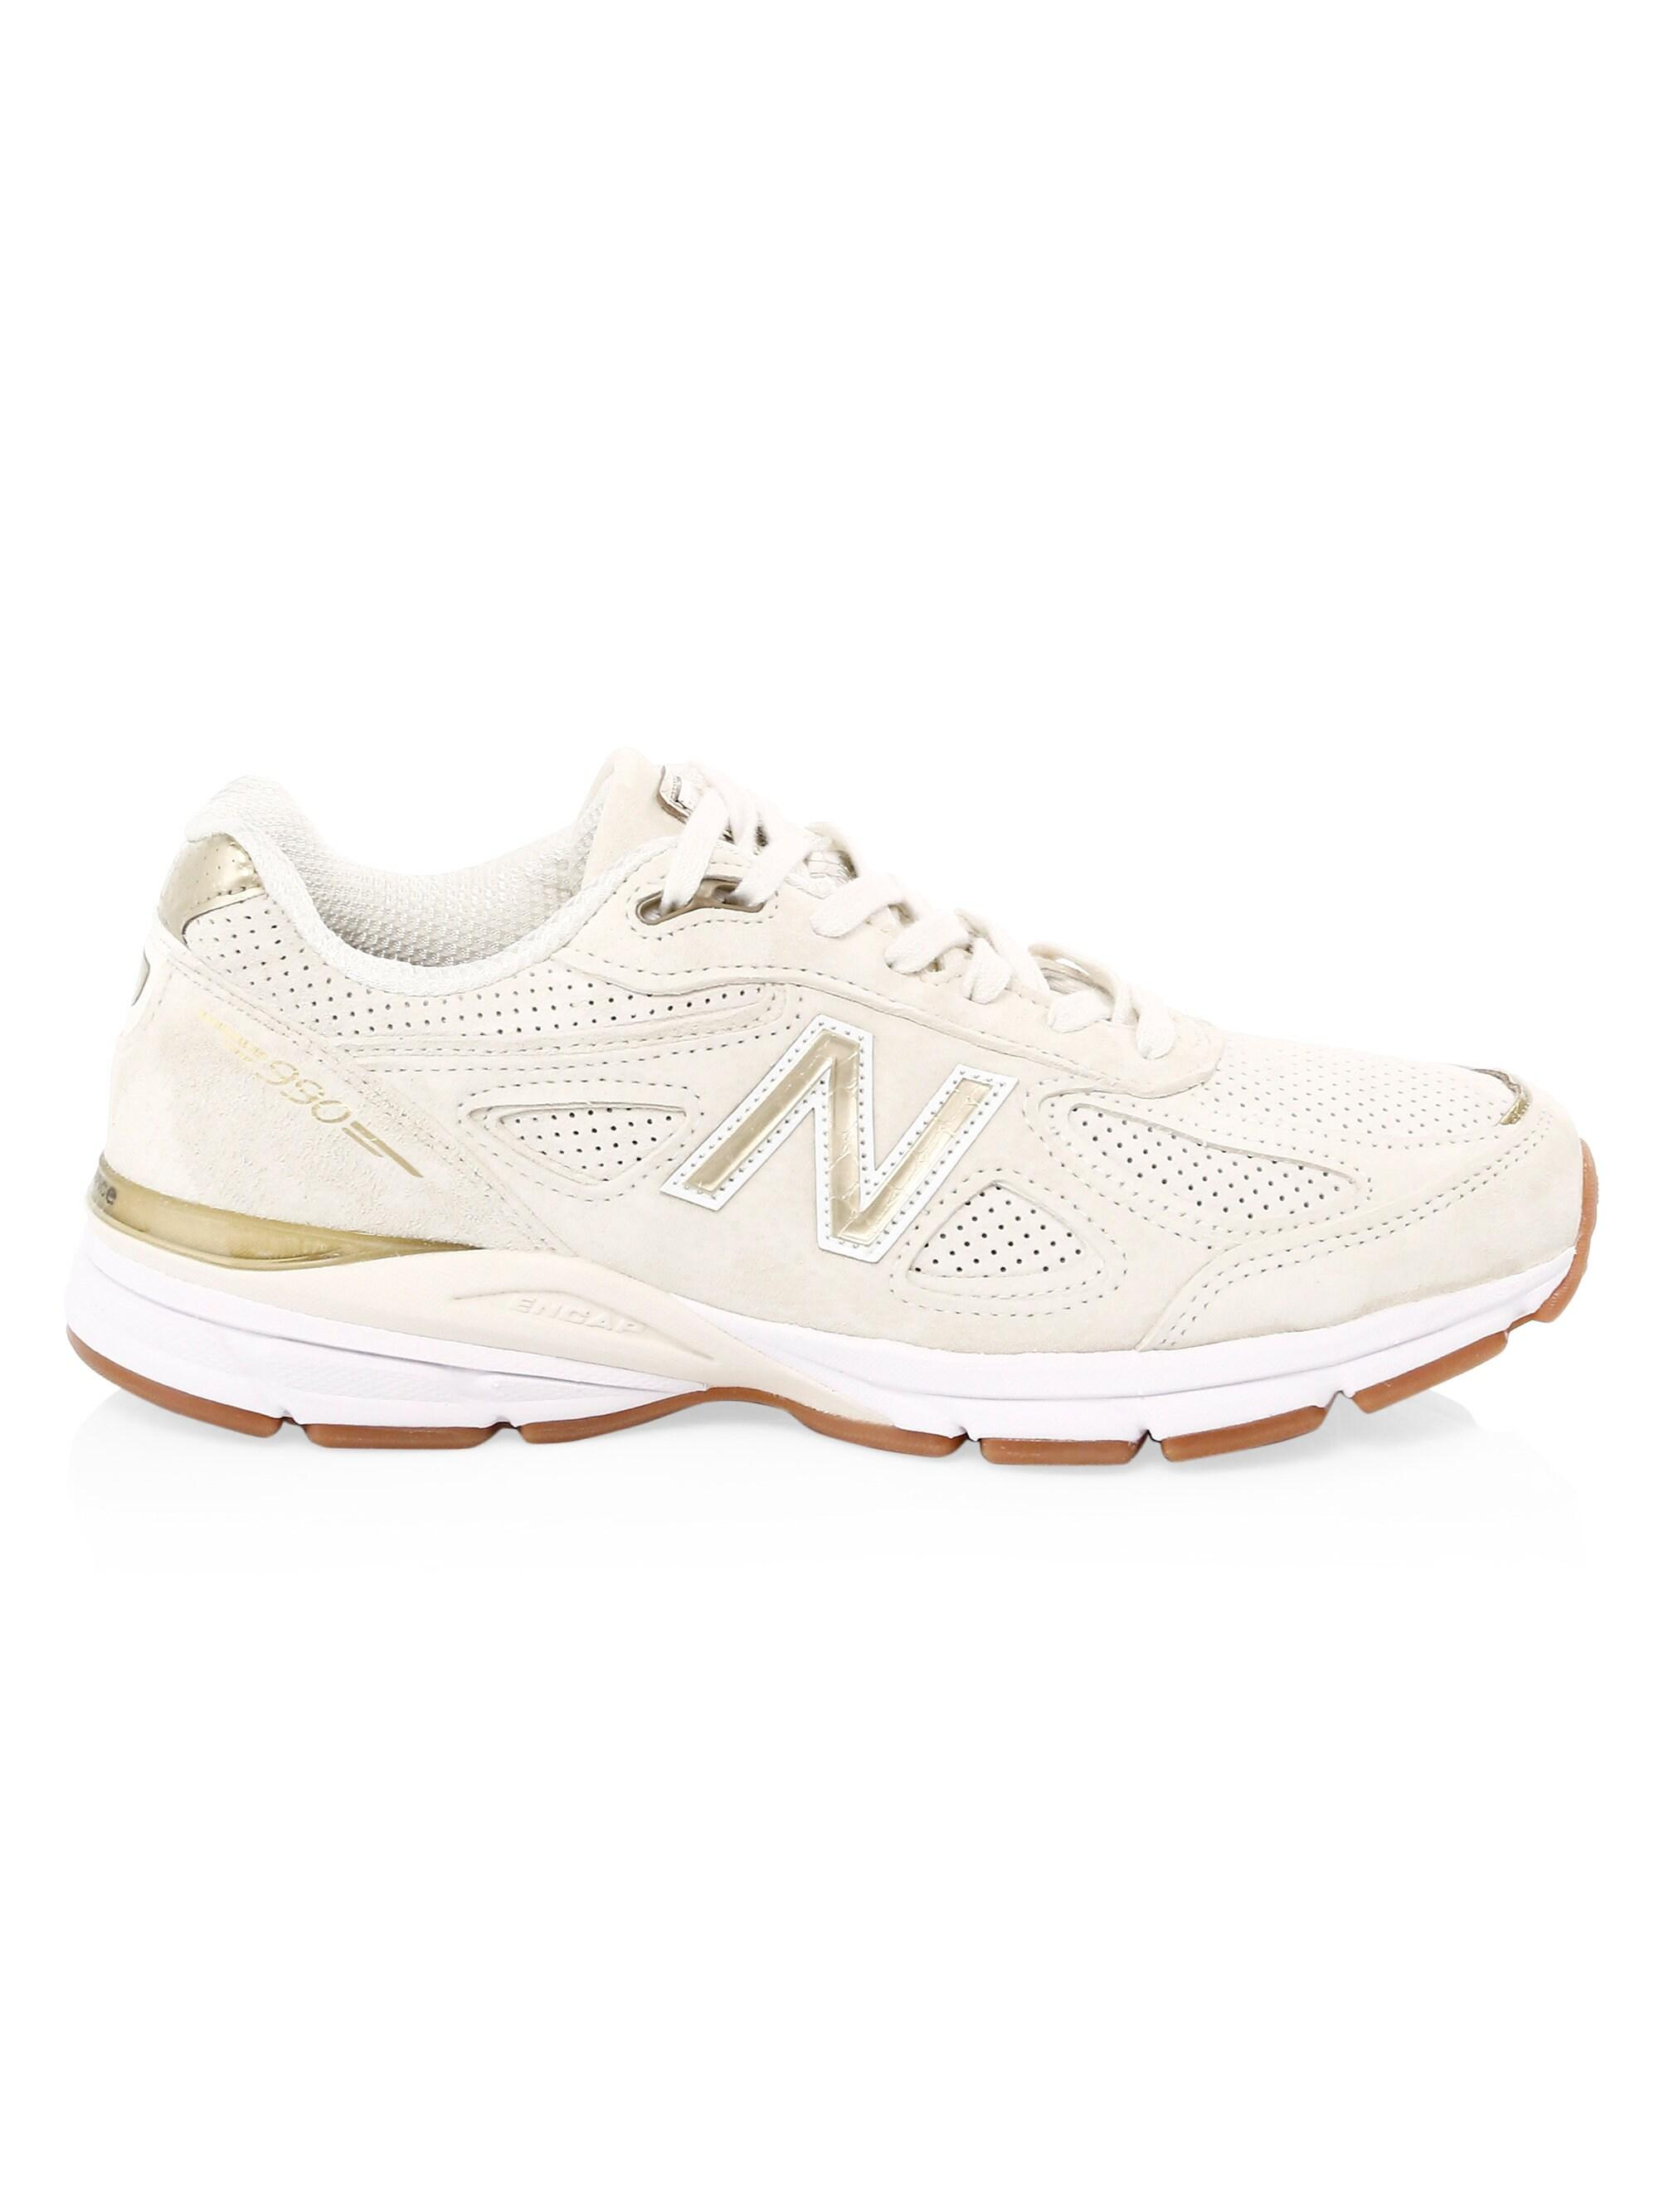 fc2469b1746e4 New Balance Men's 990 Suede & Mesh Sneakers - Angora for Men - Lyst